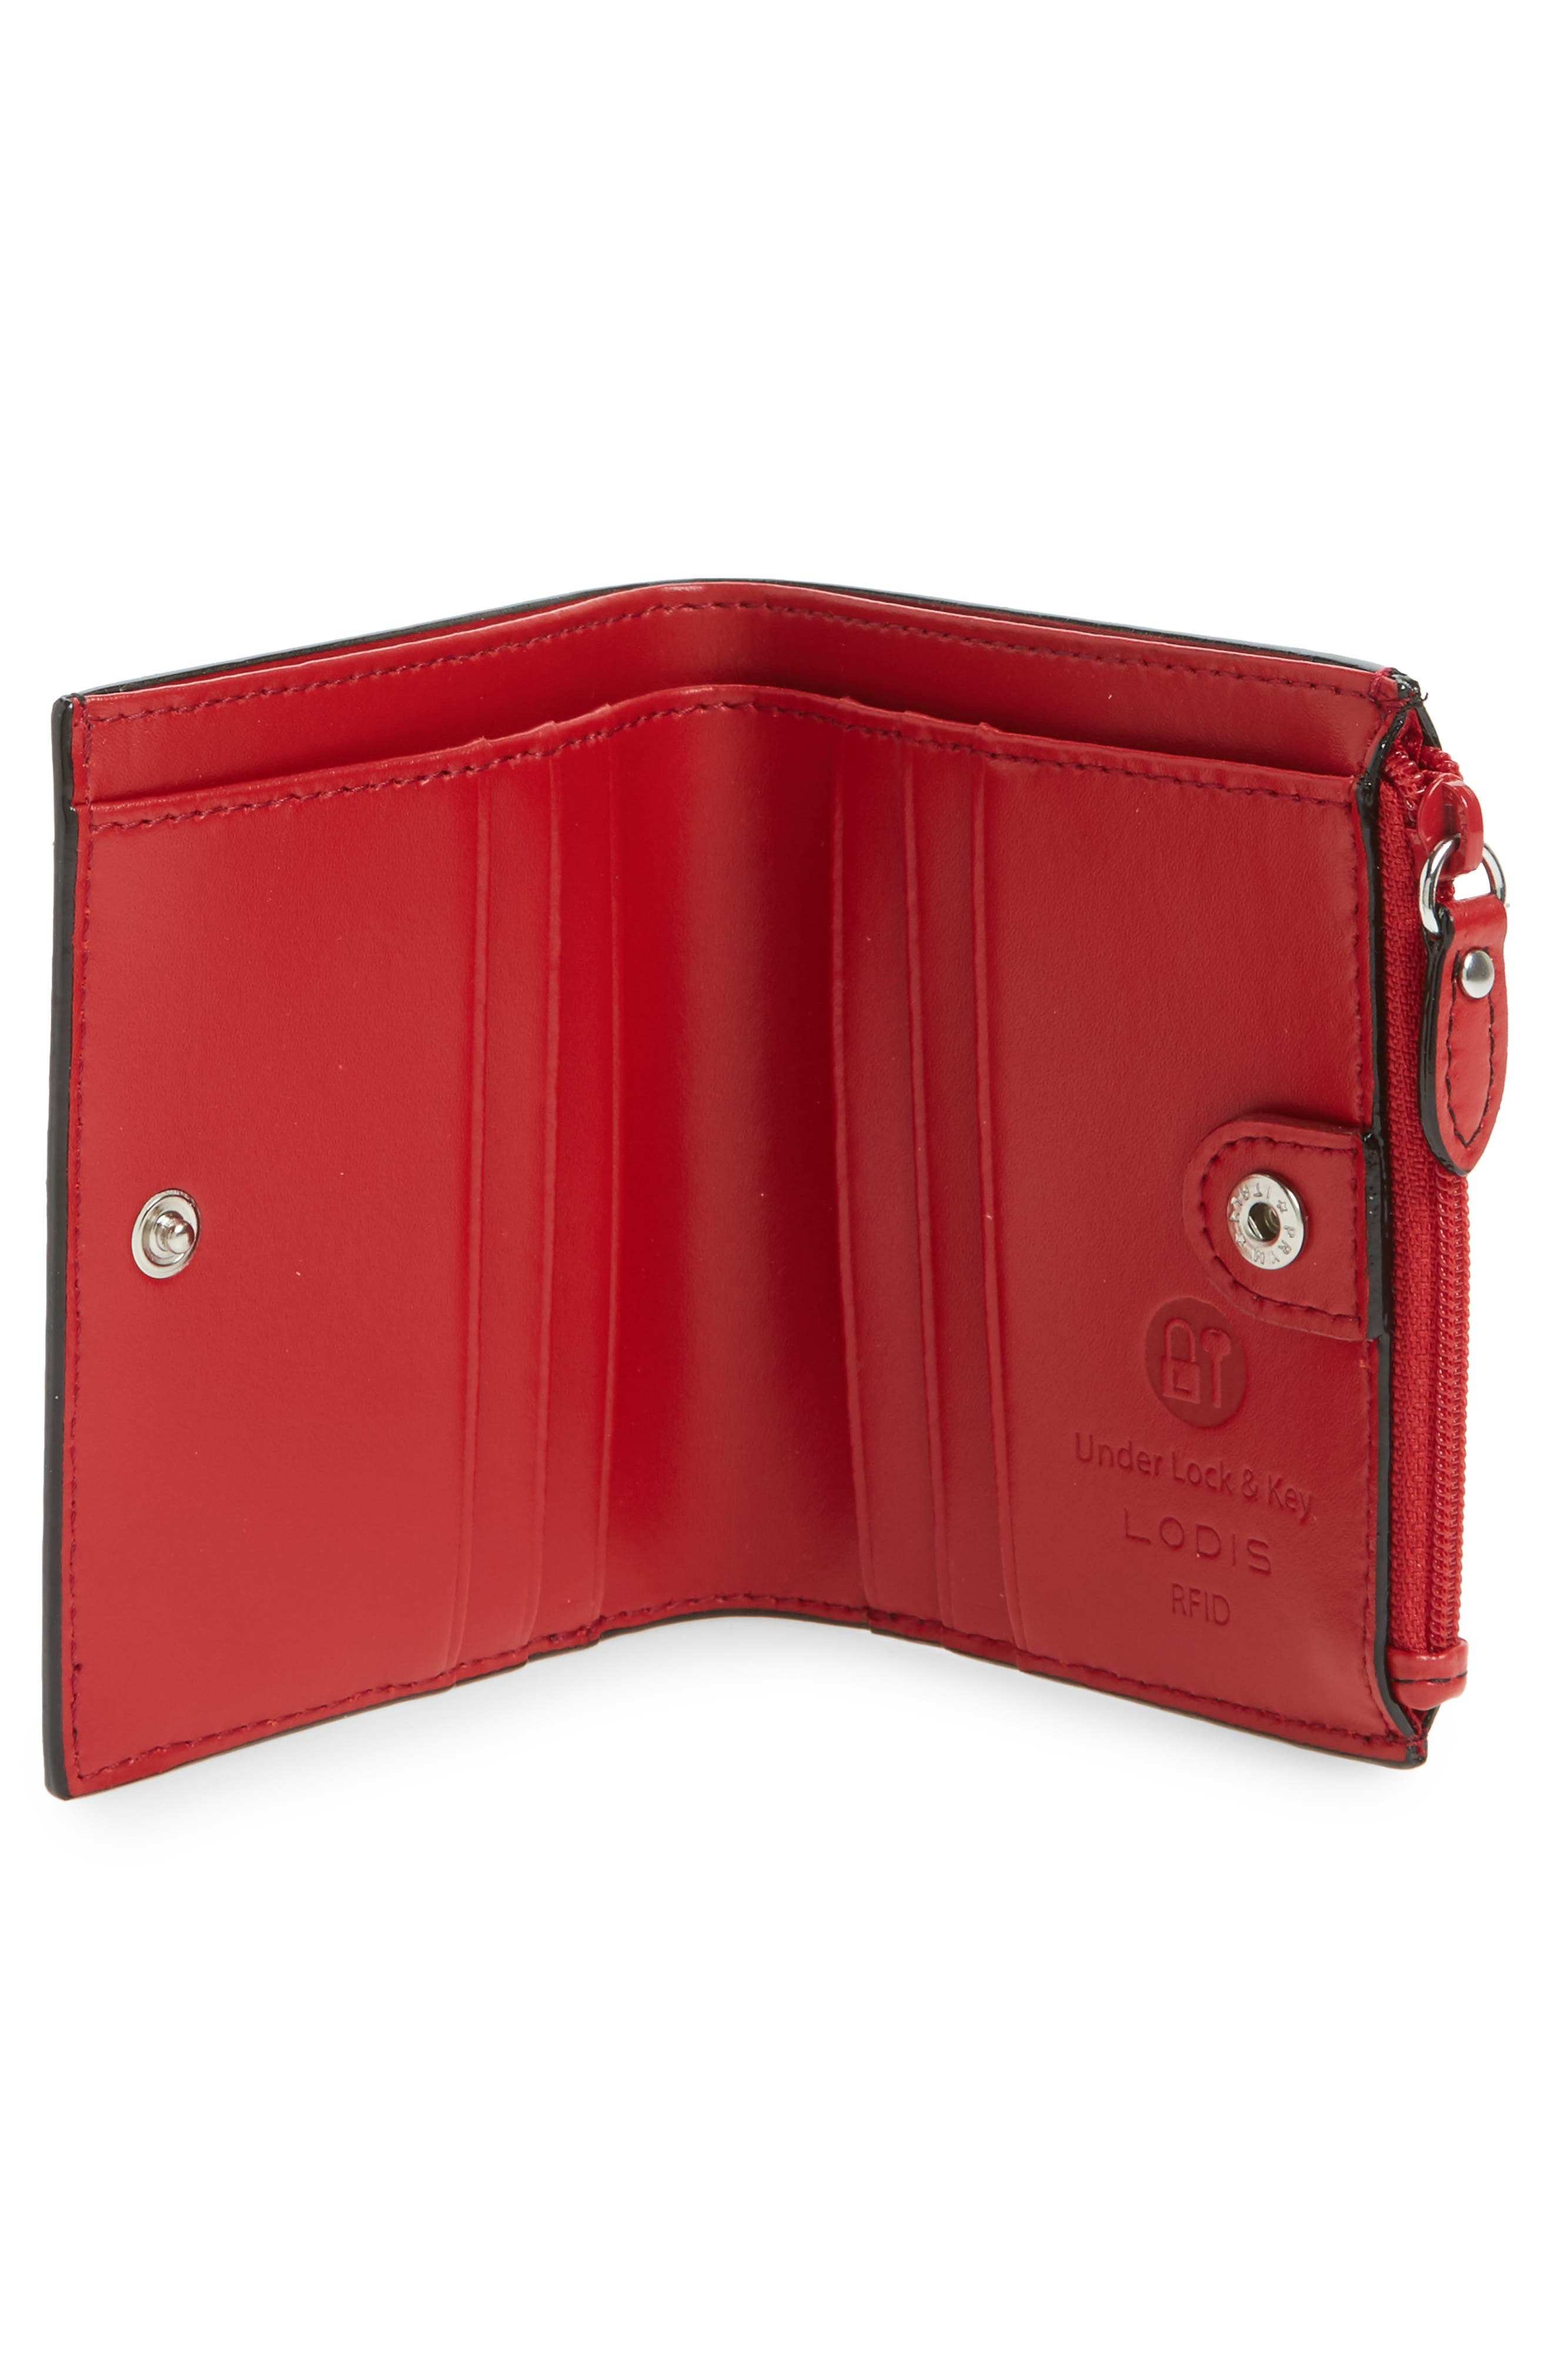 Audrey Under Lock & Key Aldis Leather Wallet,                             Alternate thumbnail 6, color,